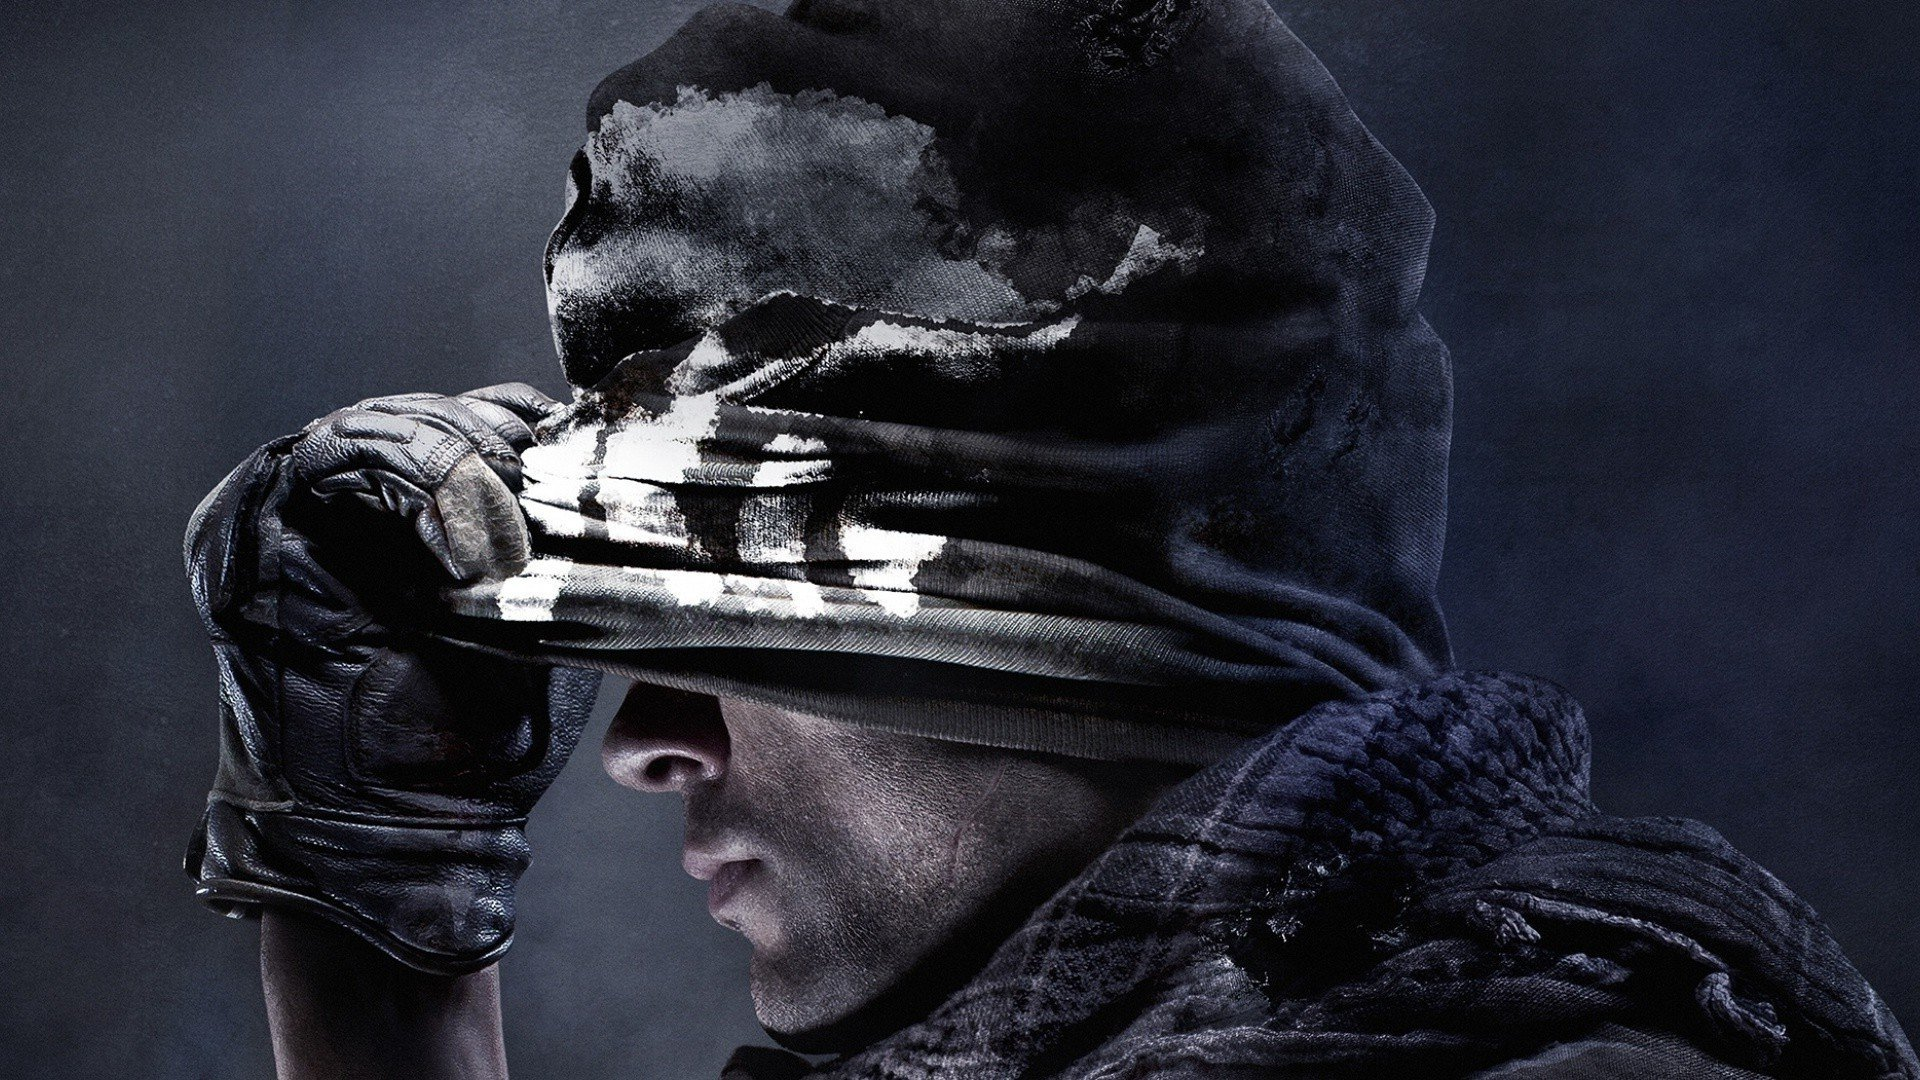 High Resolution Call Of Duty Ghosts Hd 1920x1080 Wallpaper Id